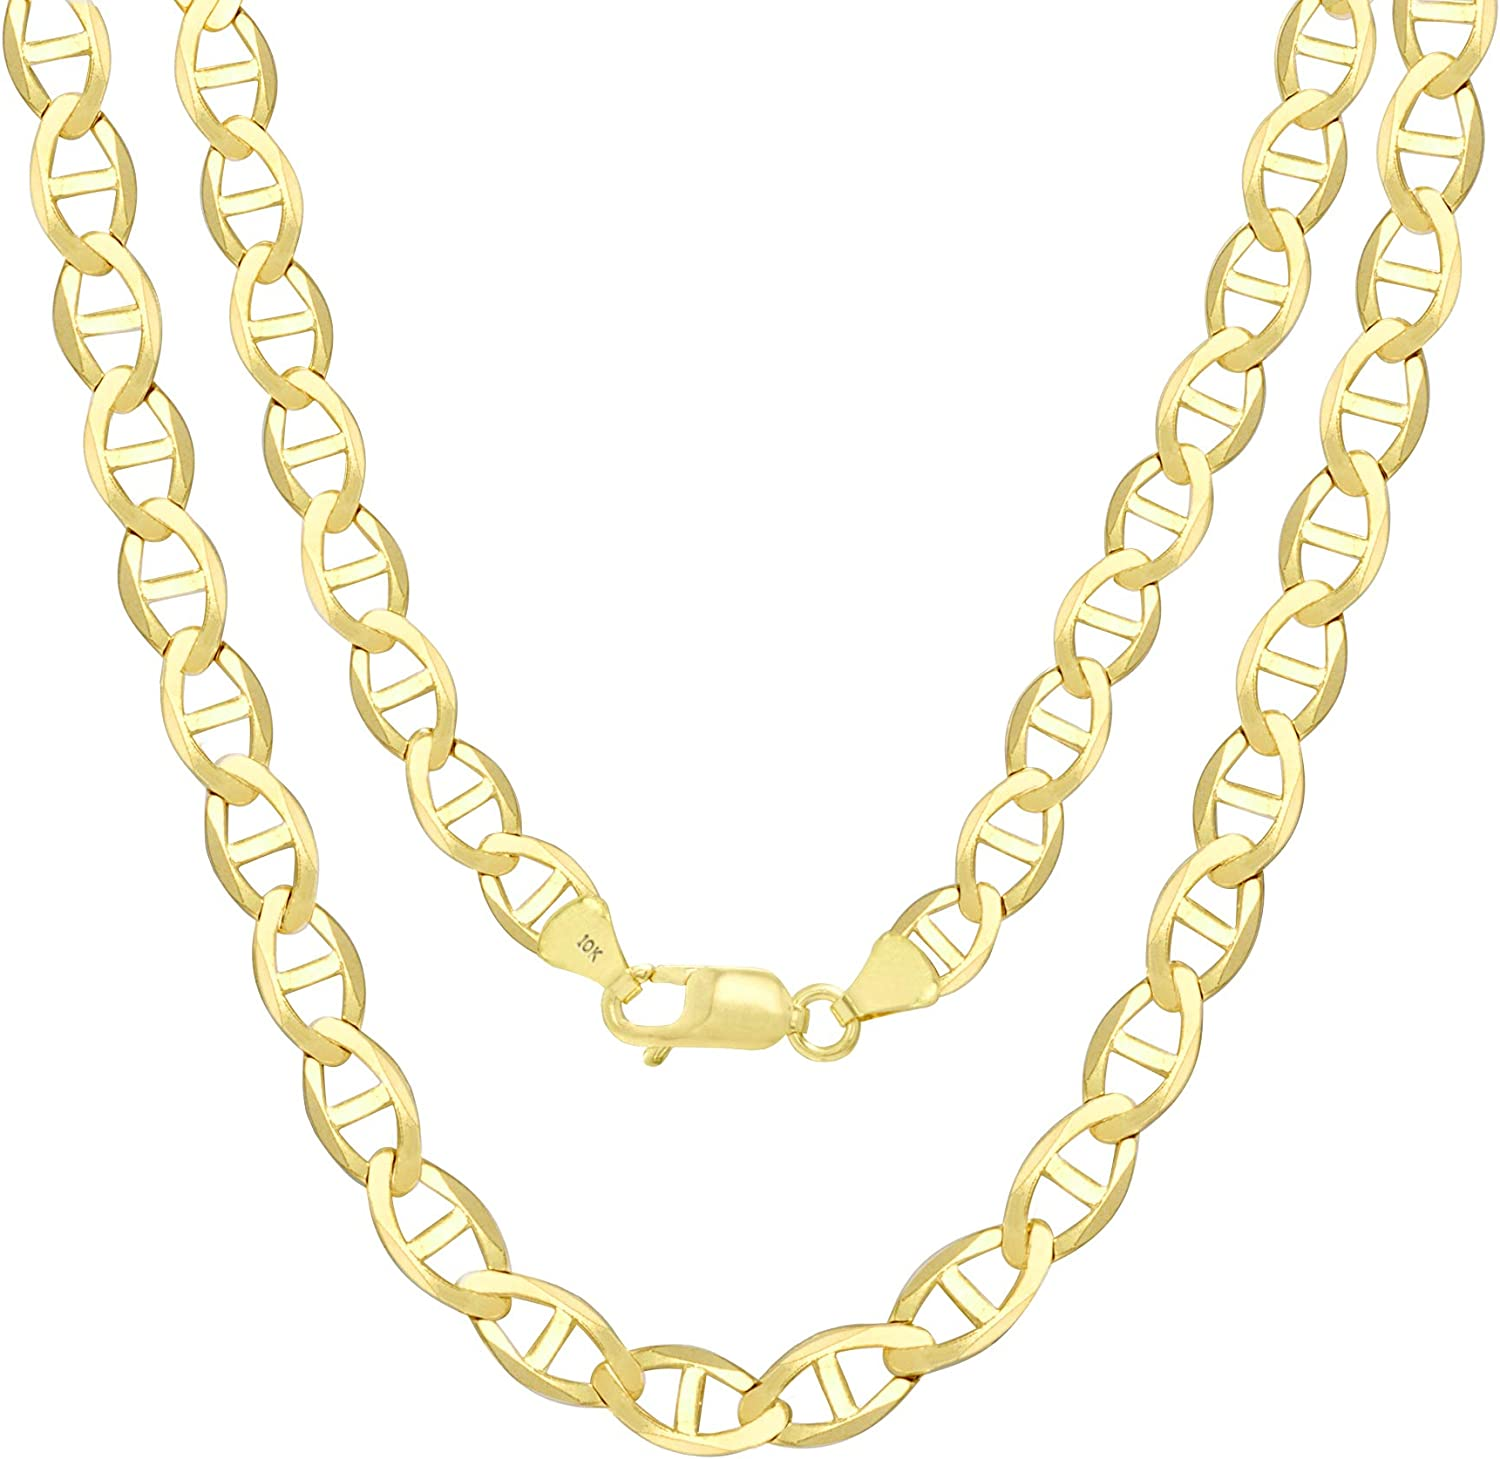 Nuragold 10k Yellow Gold Solid 6mm Anchor Mariner Link Chain Pendant Necklace, Mens Jewelry Lobster Lock 18